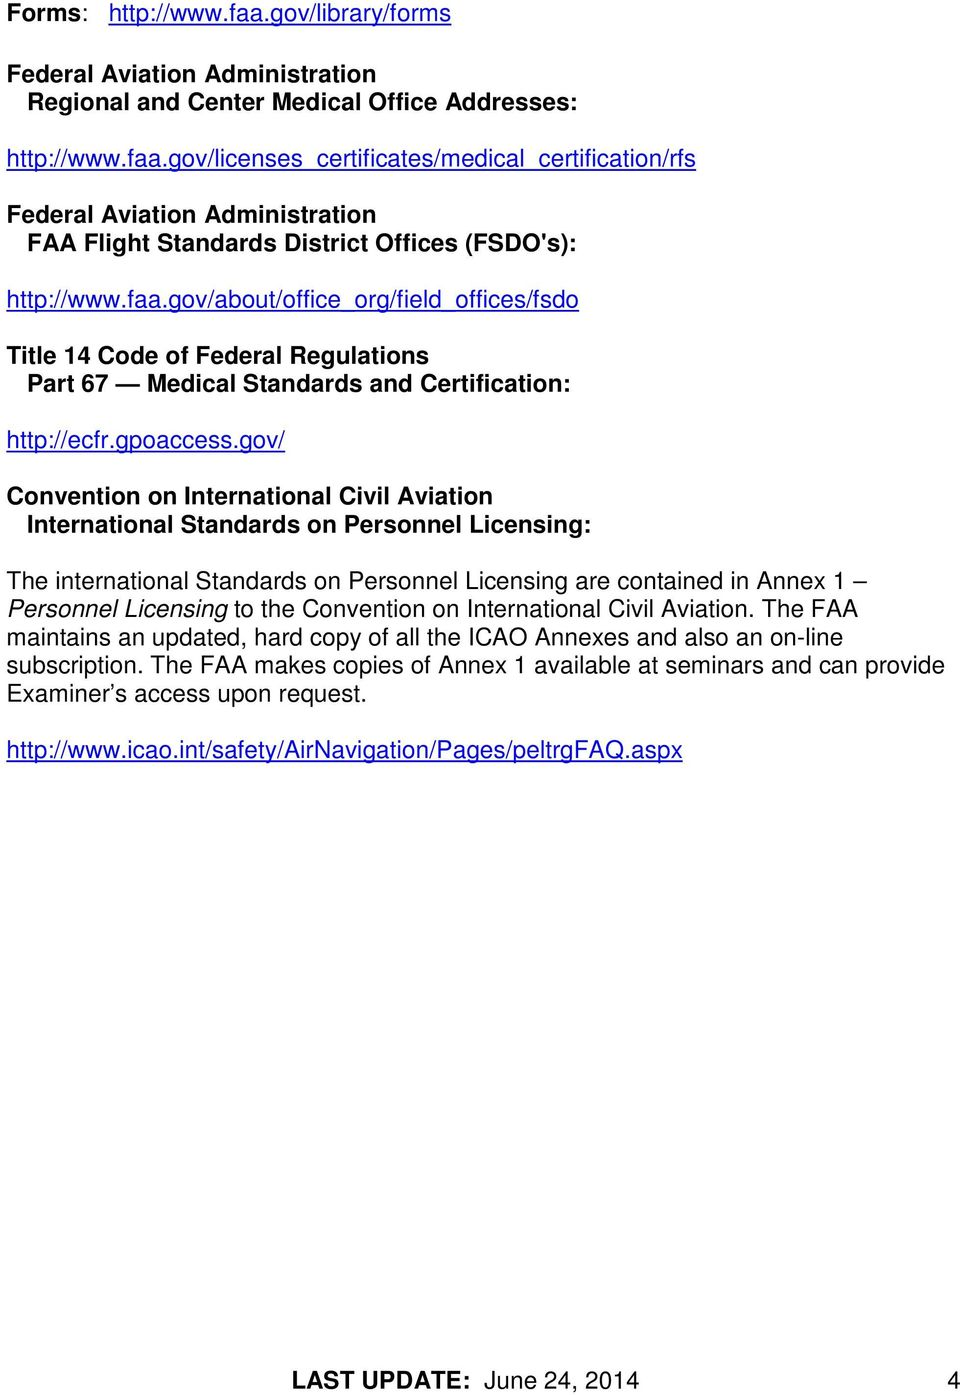 Guide For Aviation Medical Examiners Pdf